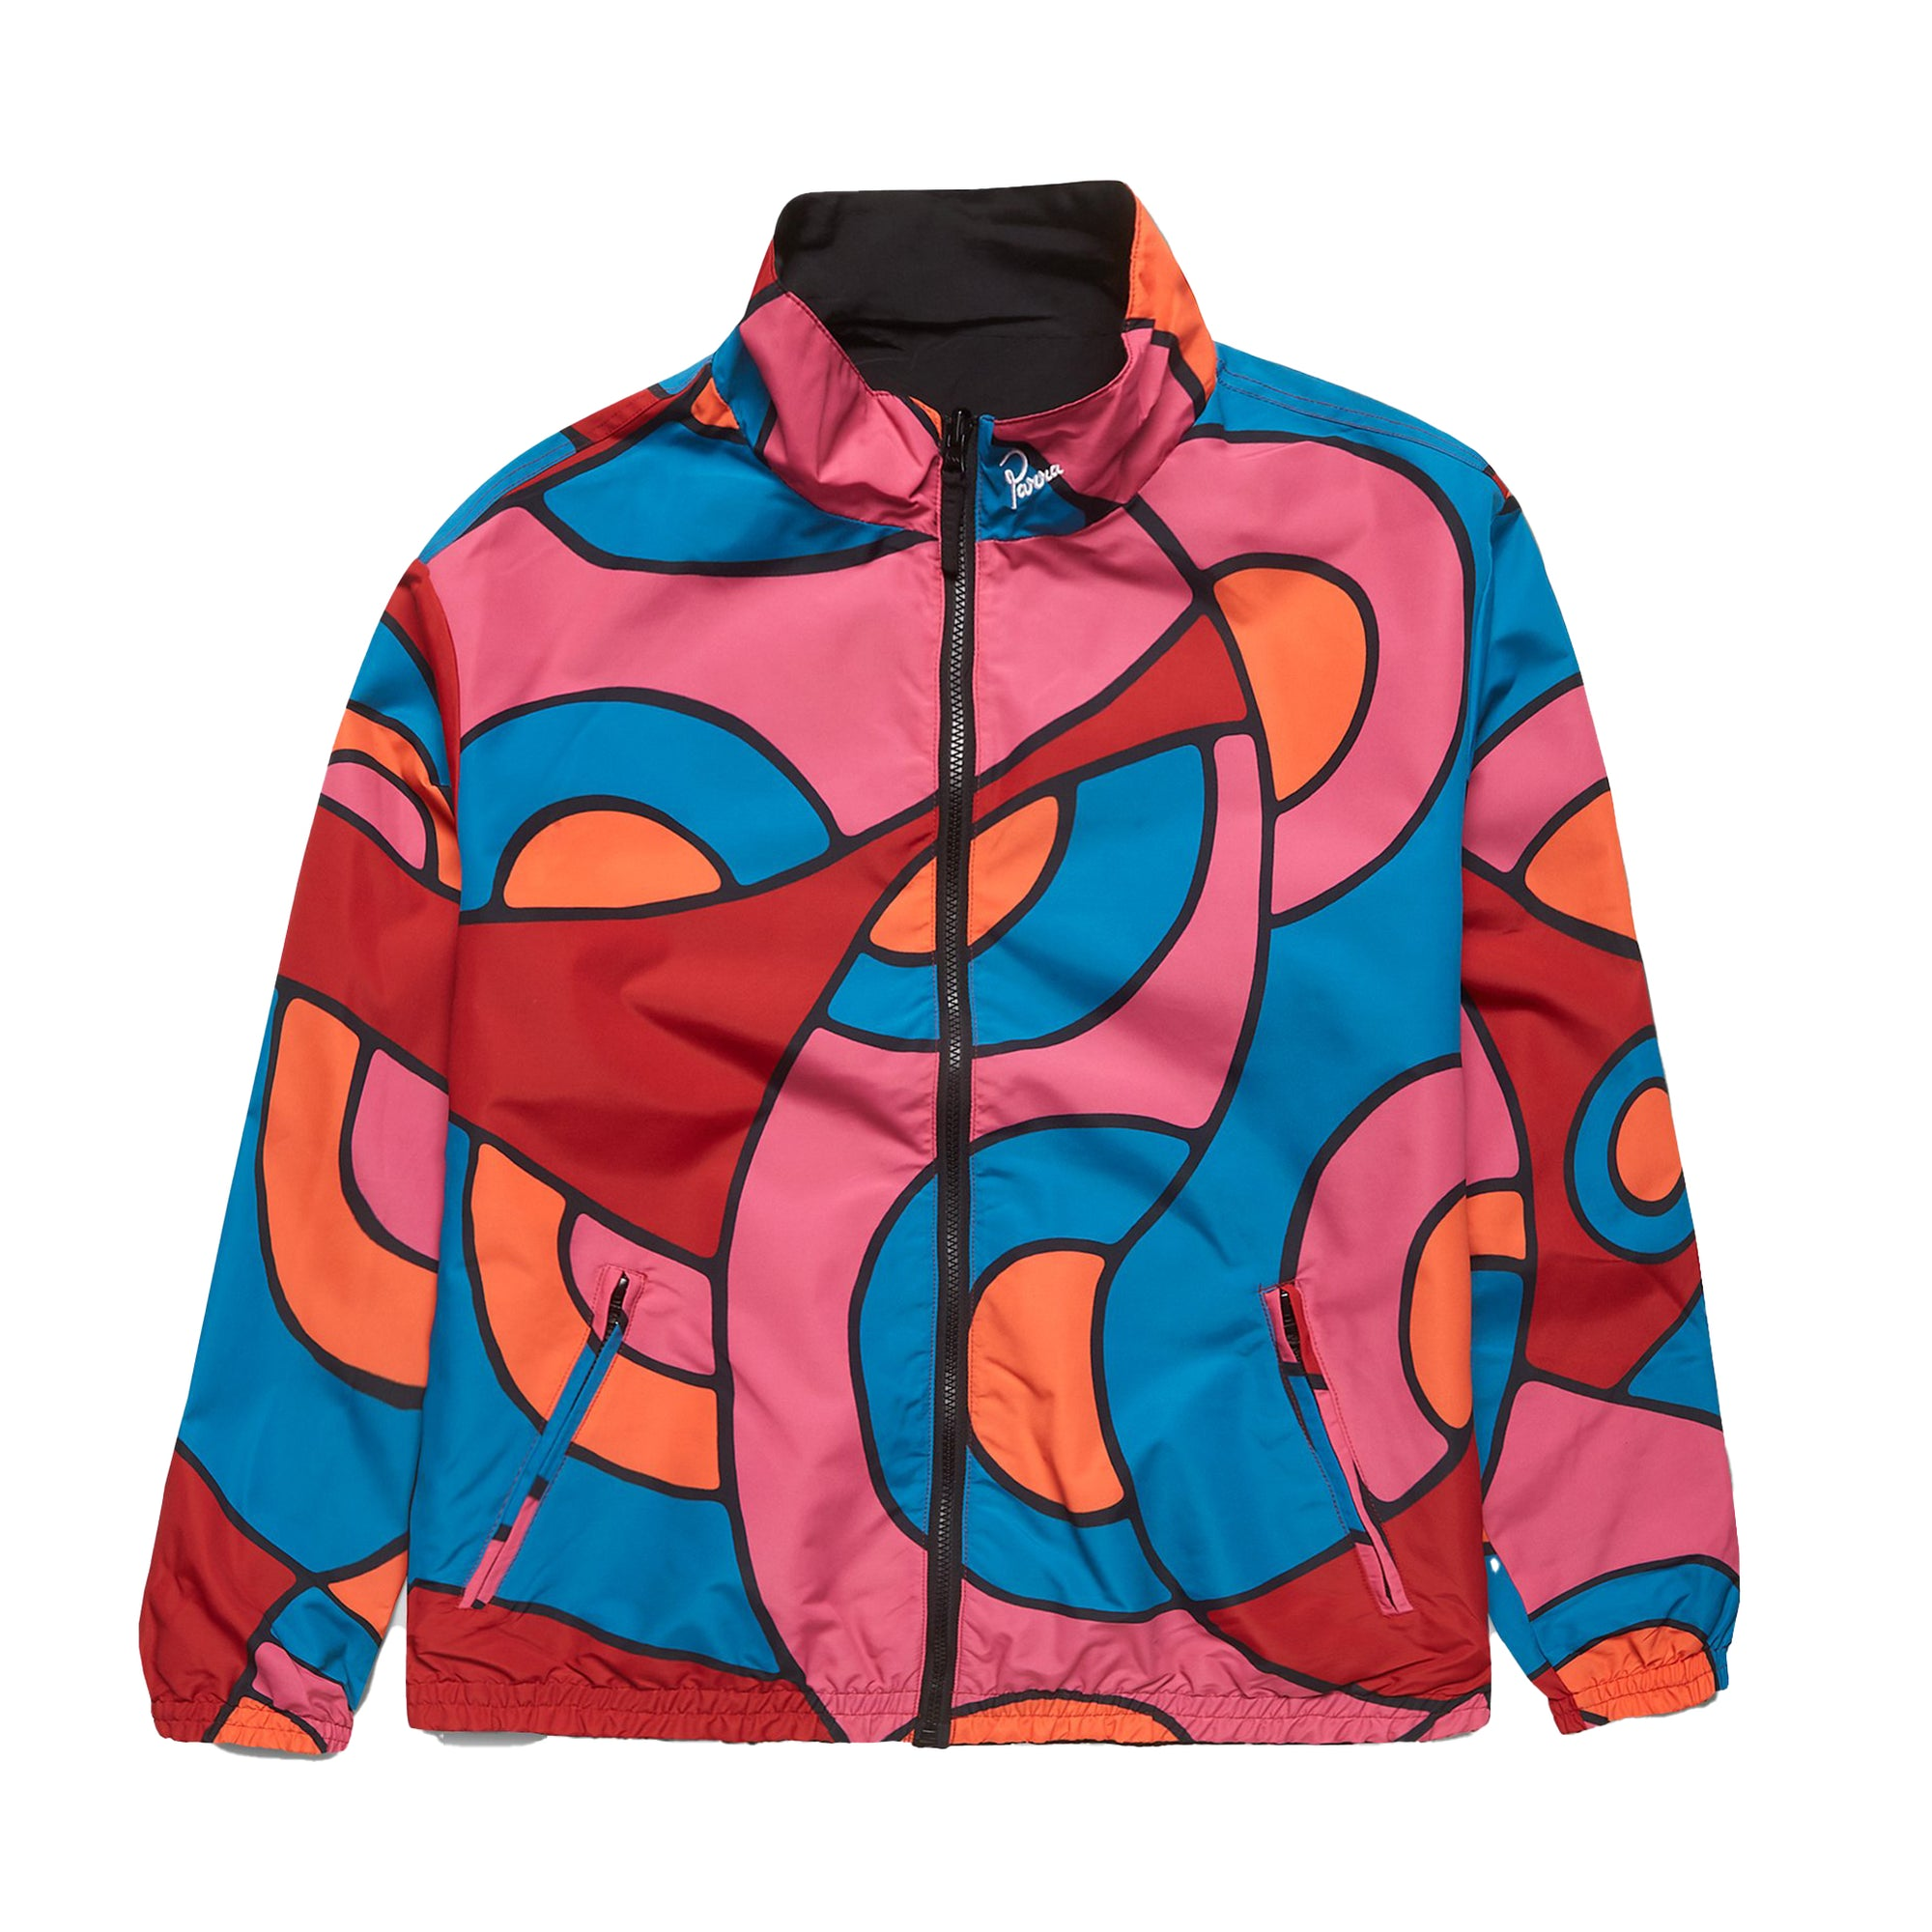 Parra Serpent Pattern Track Top: Multi - The Union Project